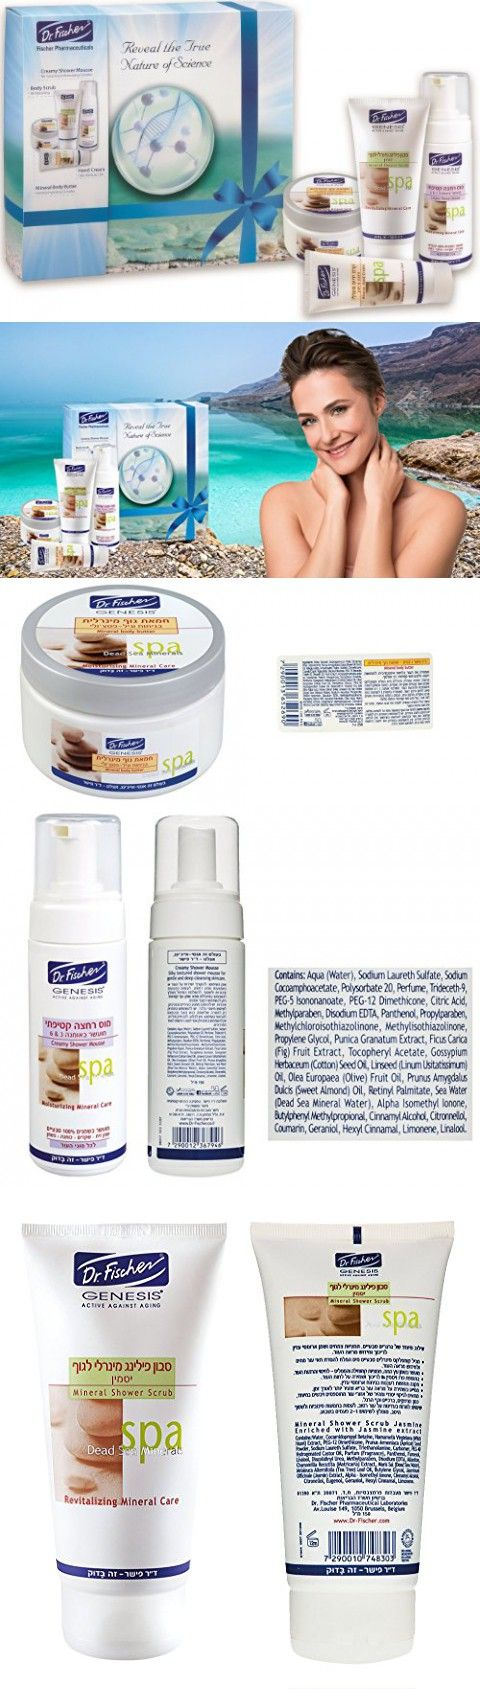 4 in 1 Genesis Dead Sea Minerals SPA Body Complete Treatment Gift Kit Dr. Fischer-SPA Gift Basket-Exclusive Gift! Directly from Dead Sea (ISRAEL)